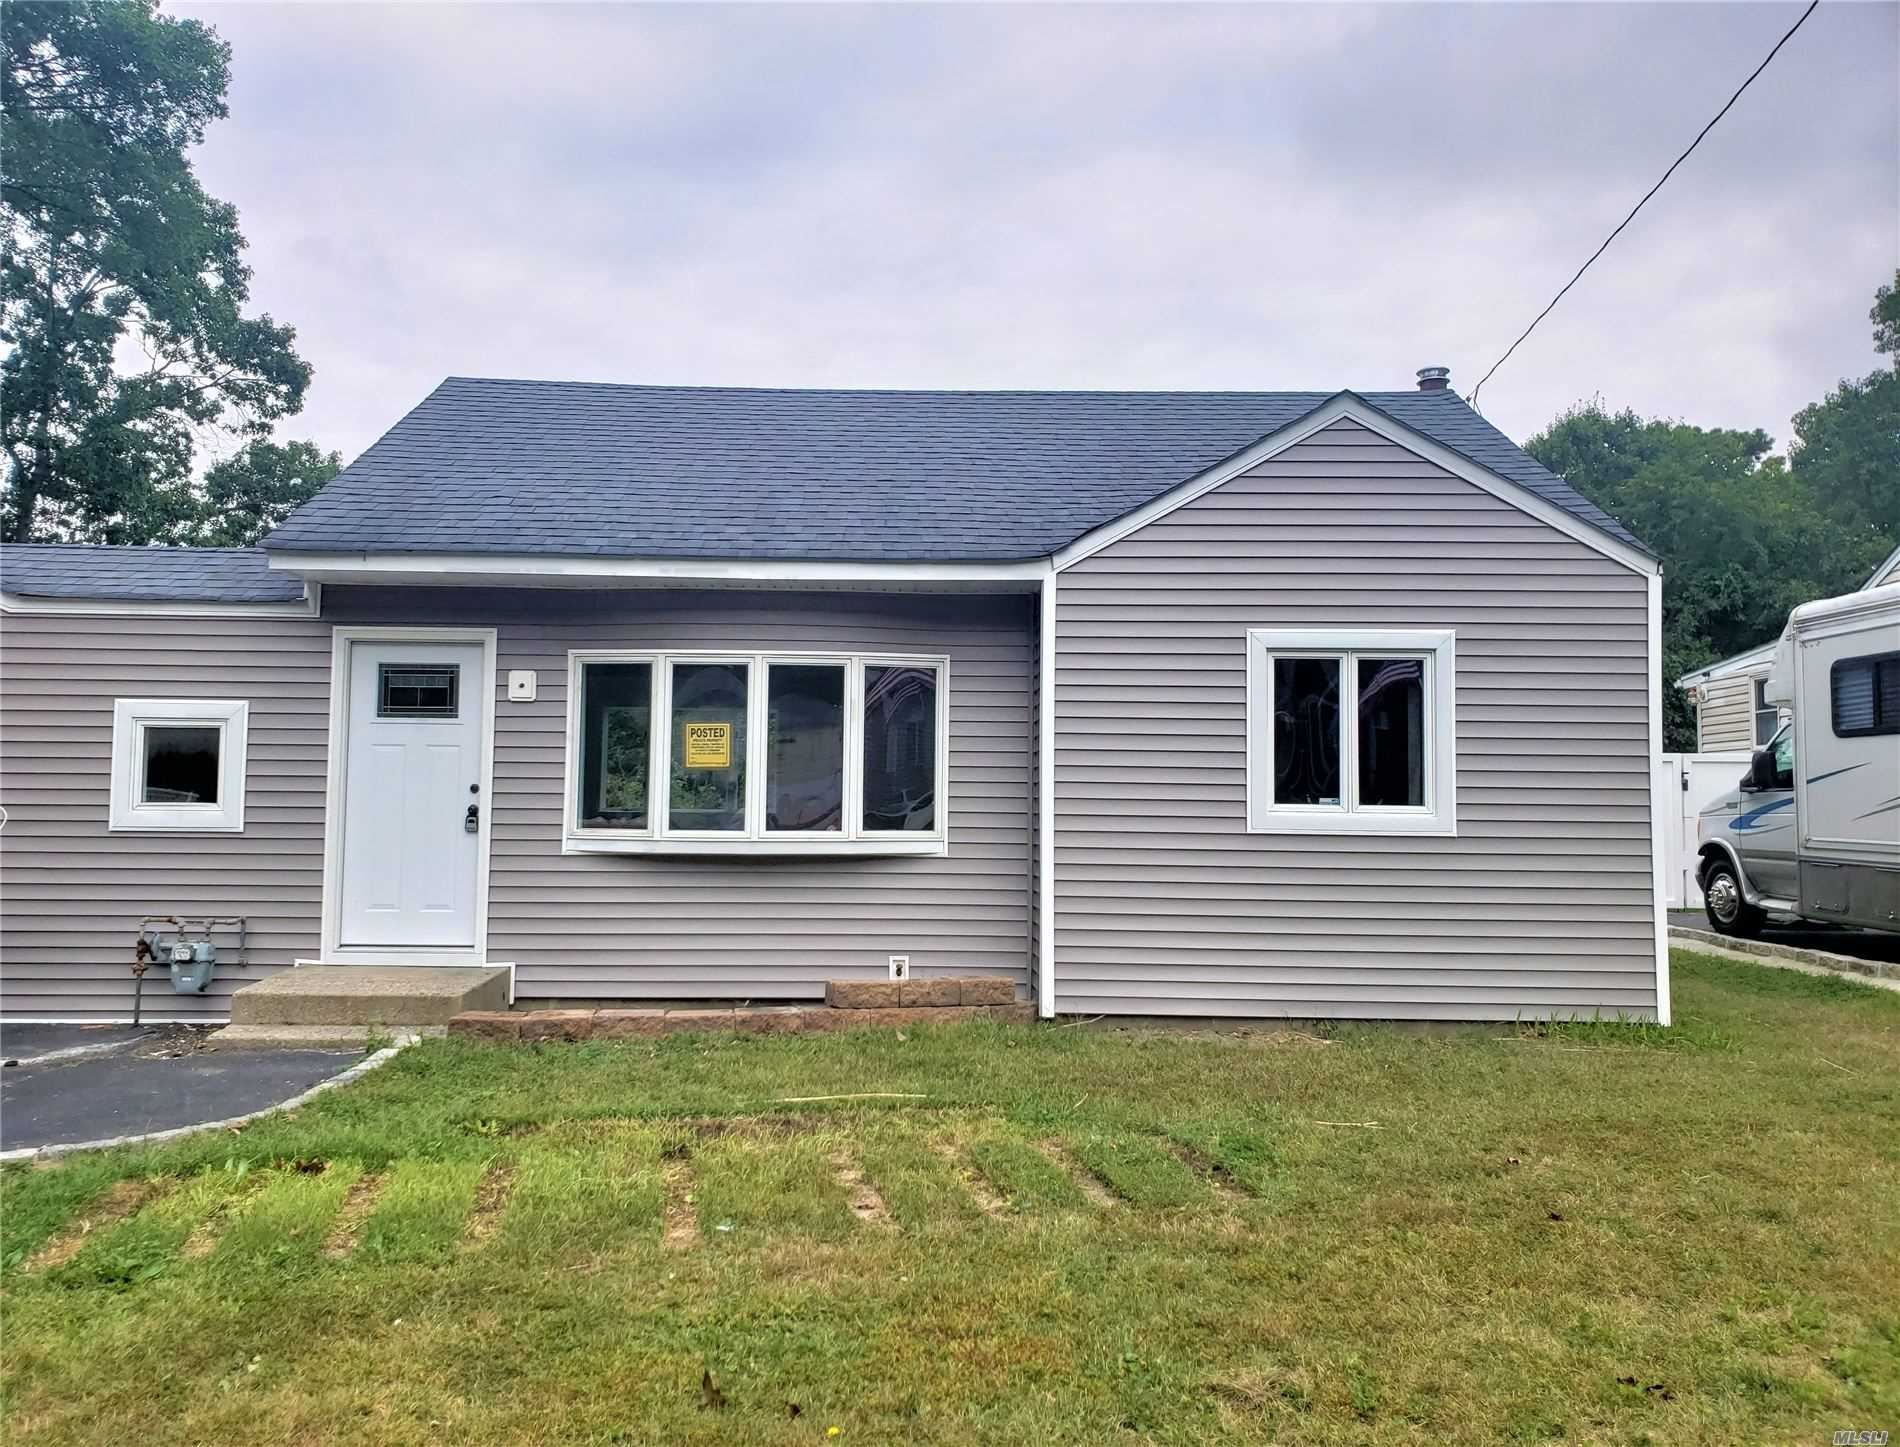 99 Ohls Street, Patchogue, NY 11772 - MLS#: 3188959